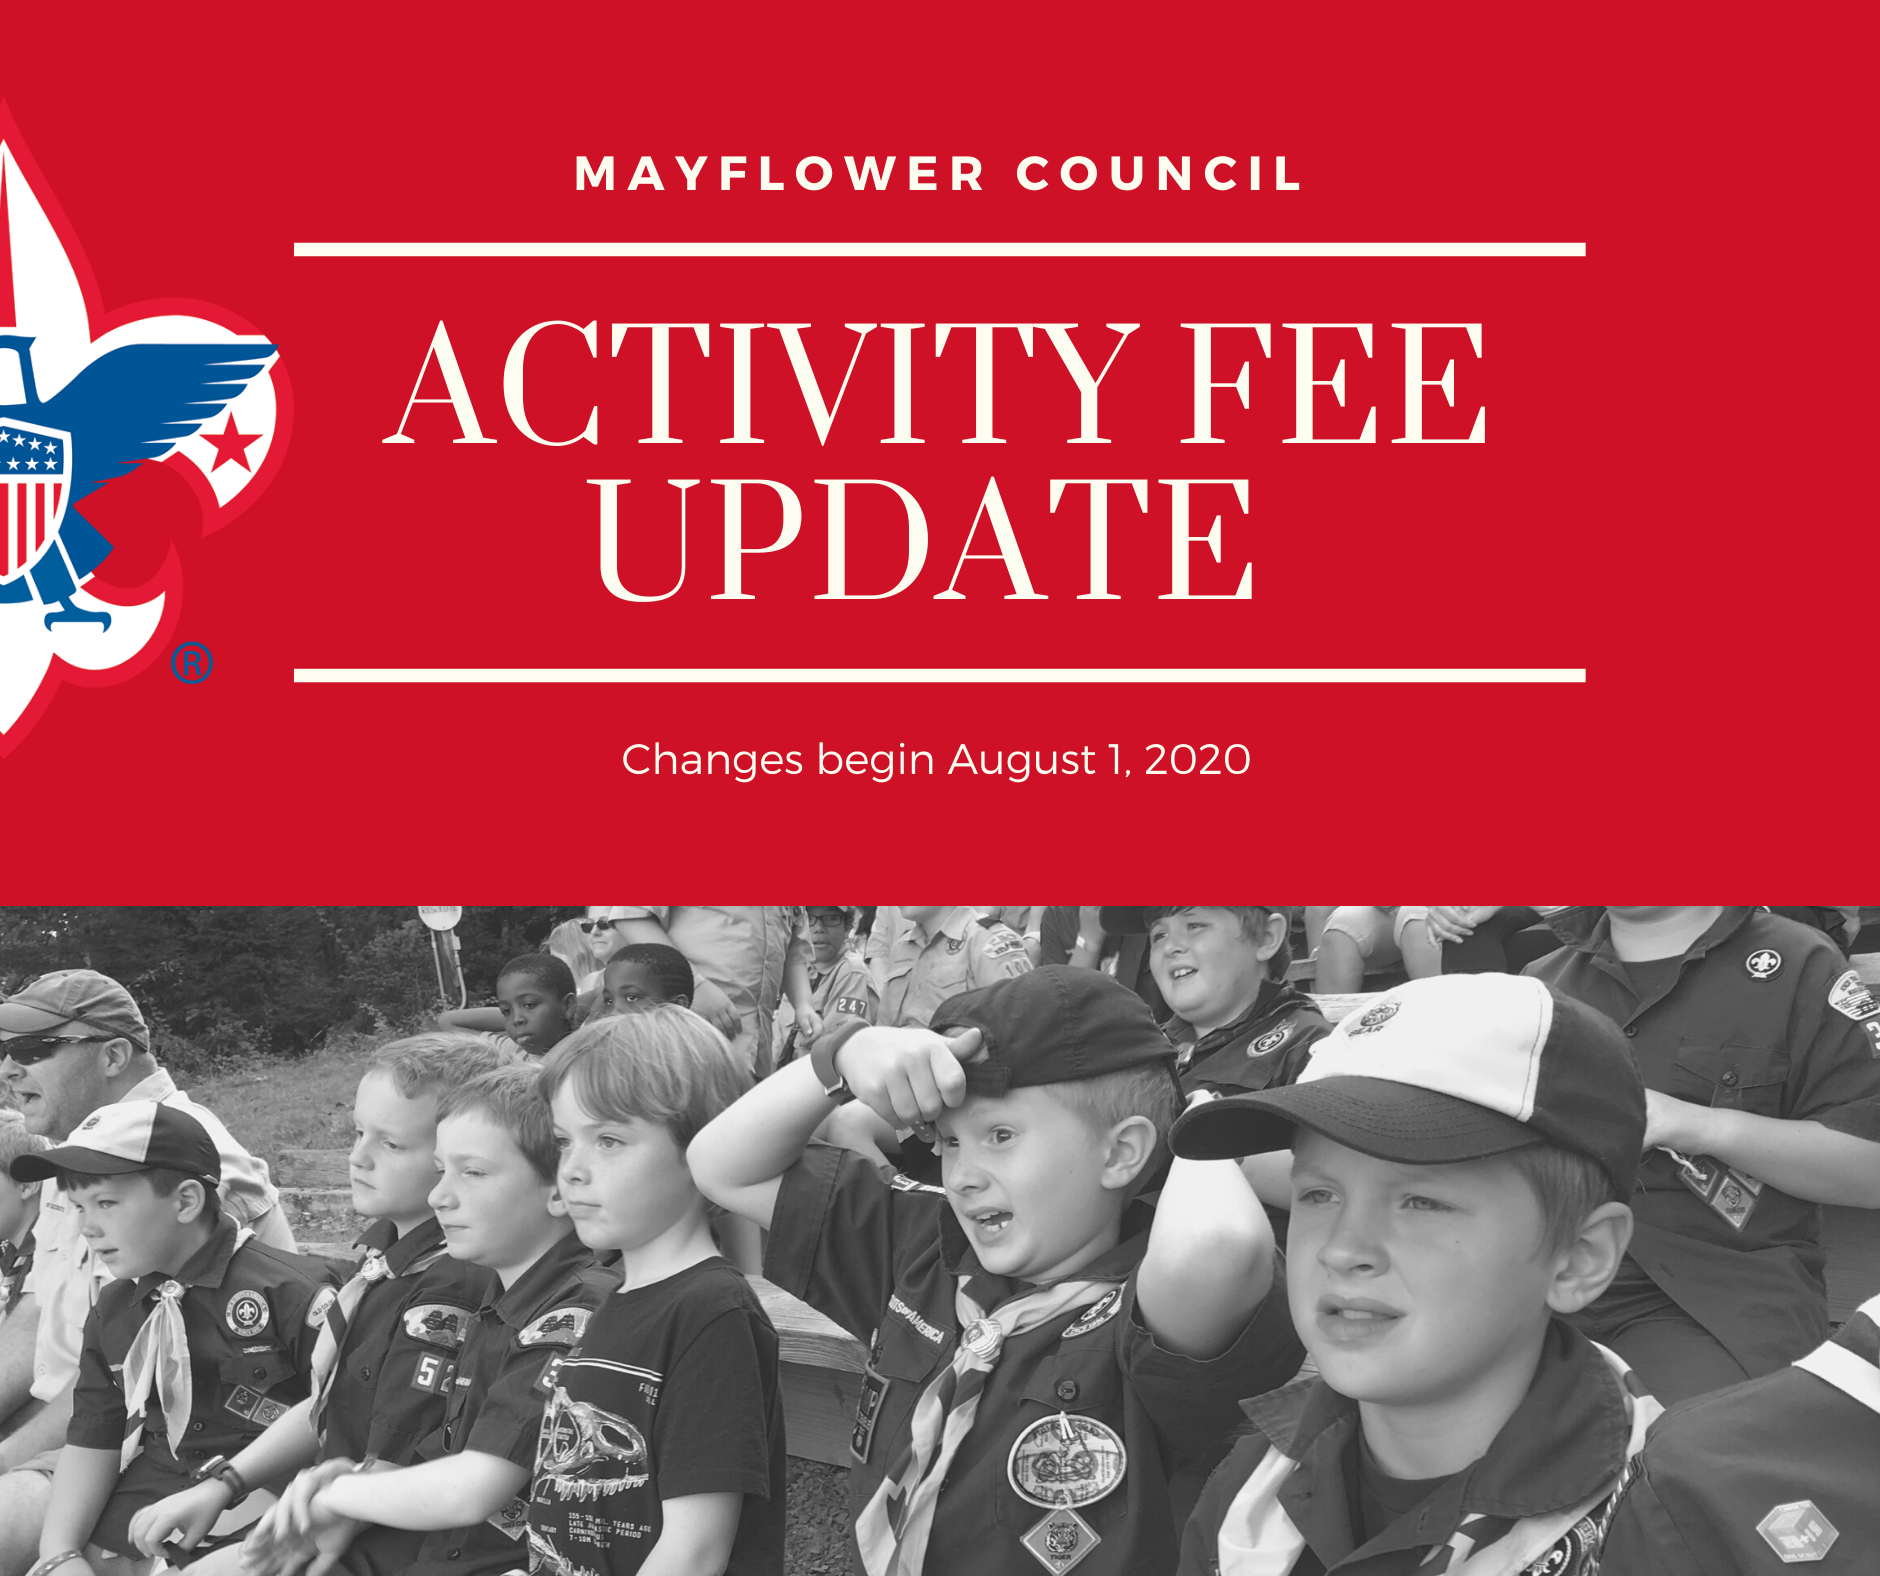 Council Activity Fee Image